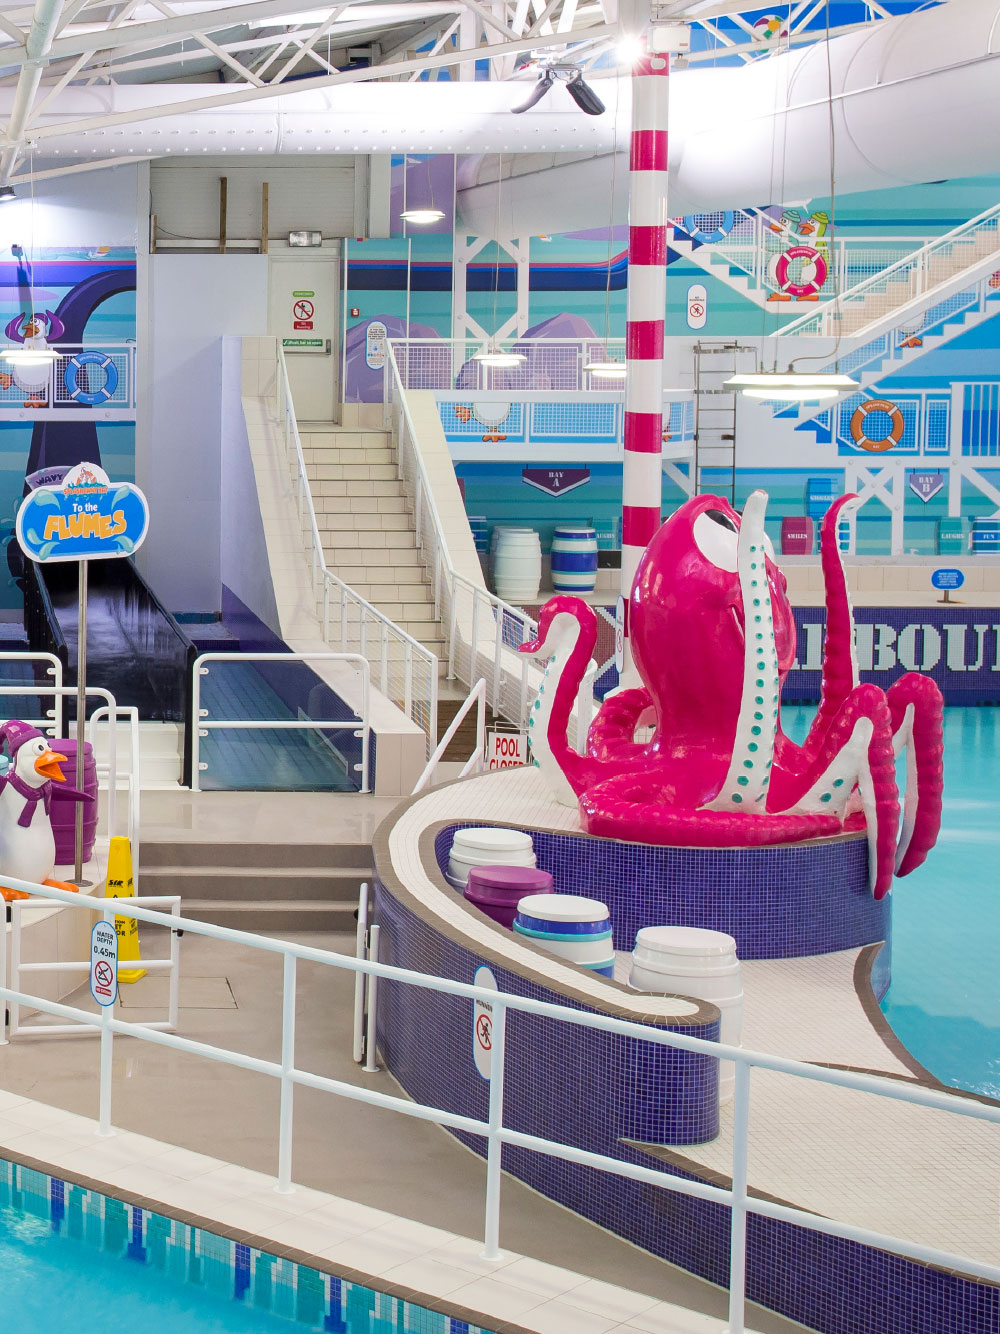 Octopus feature in Splashaway Bay